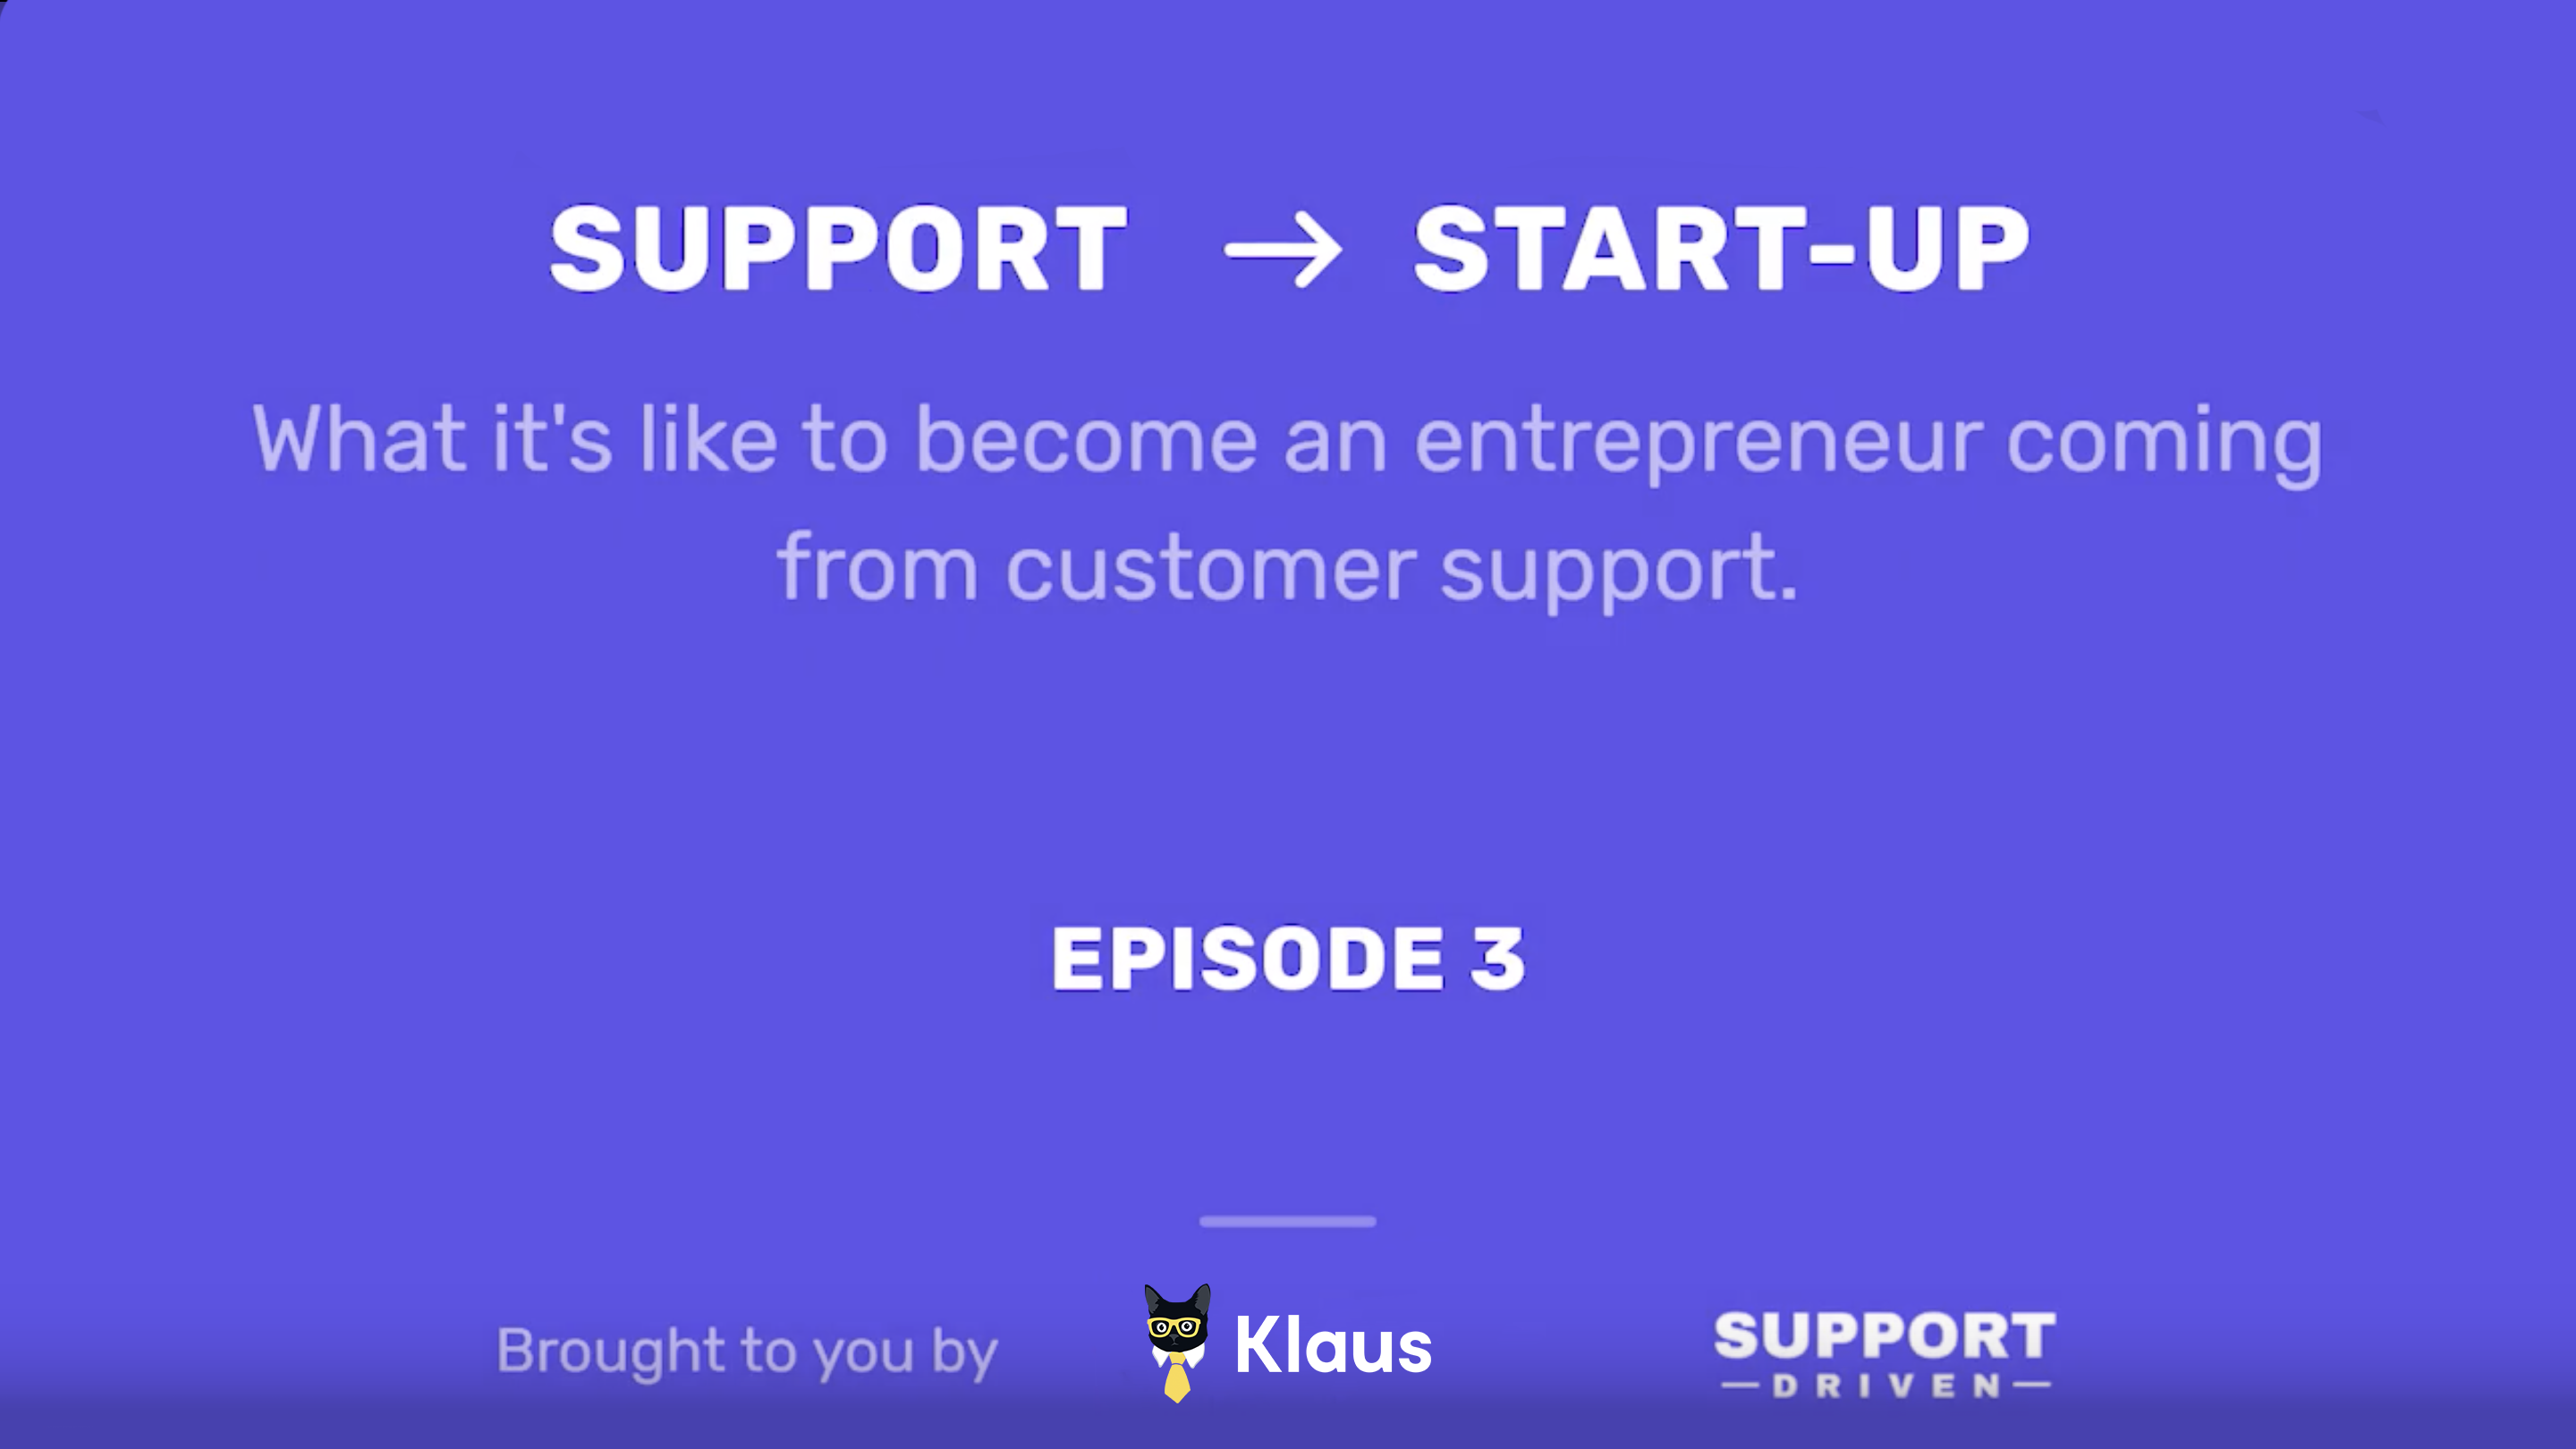 Support→Start-up 3: Typical Questions on Starting a Business